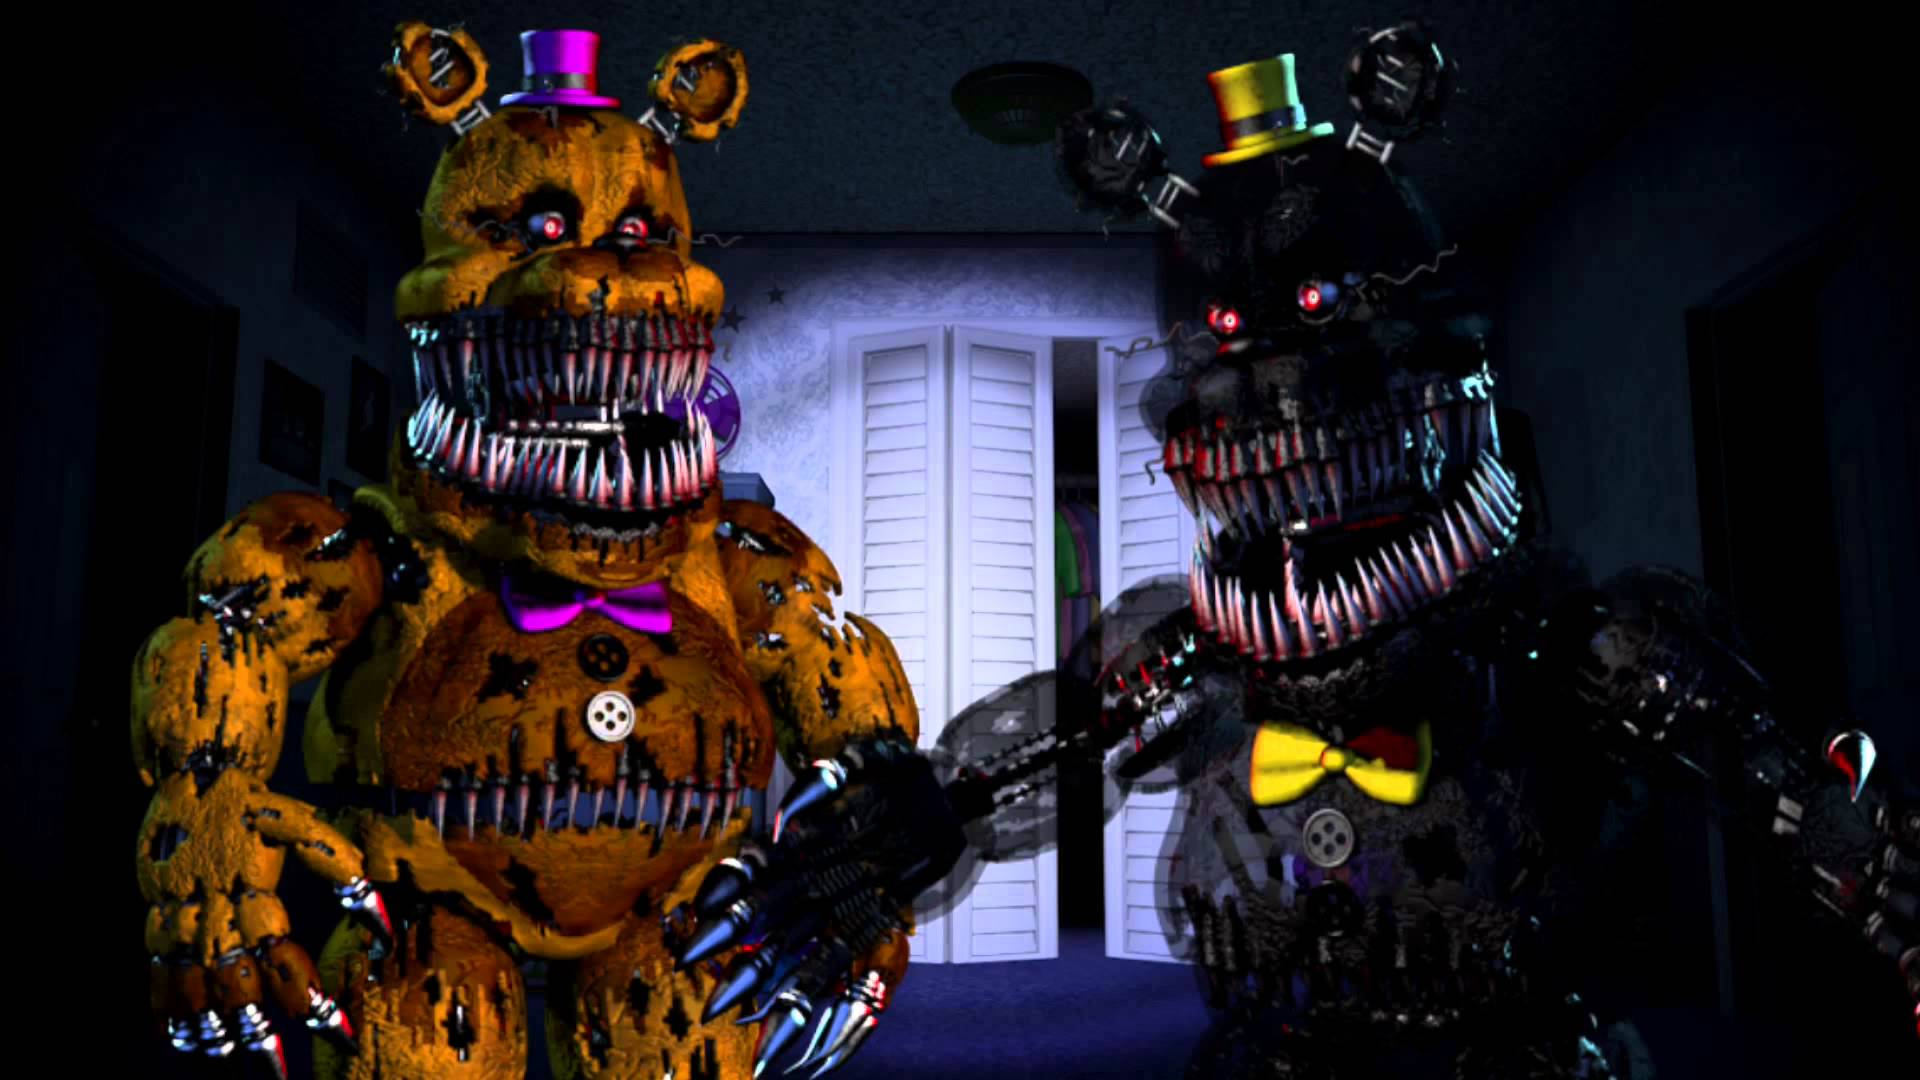 Fnaf Wallpapers 3d Nightmare Fredbear Wallpapers Wallpaper Cave